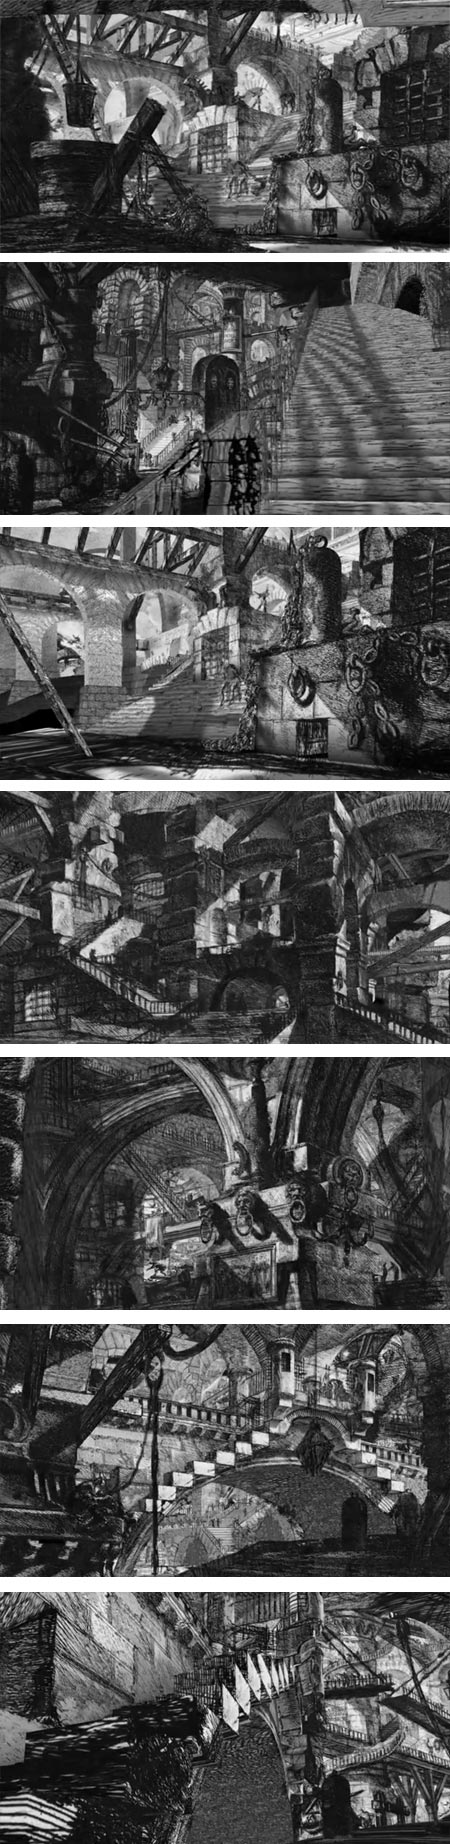 Piranesi's Carceri dinvenzione animated, Gr&eacute;goire Dupond